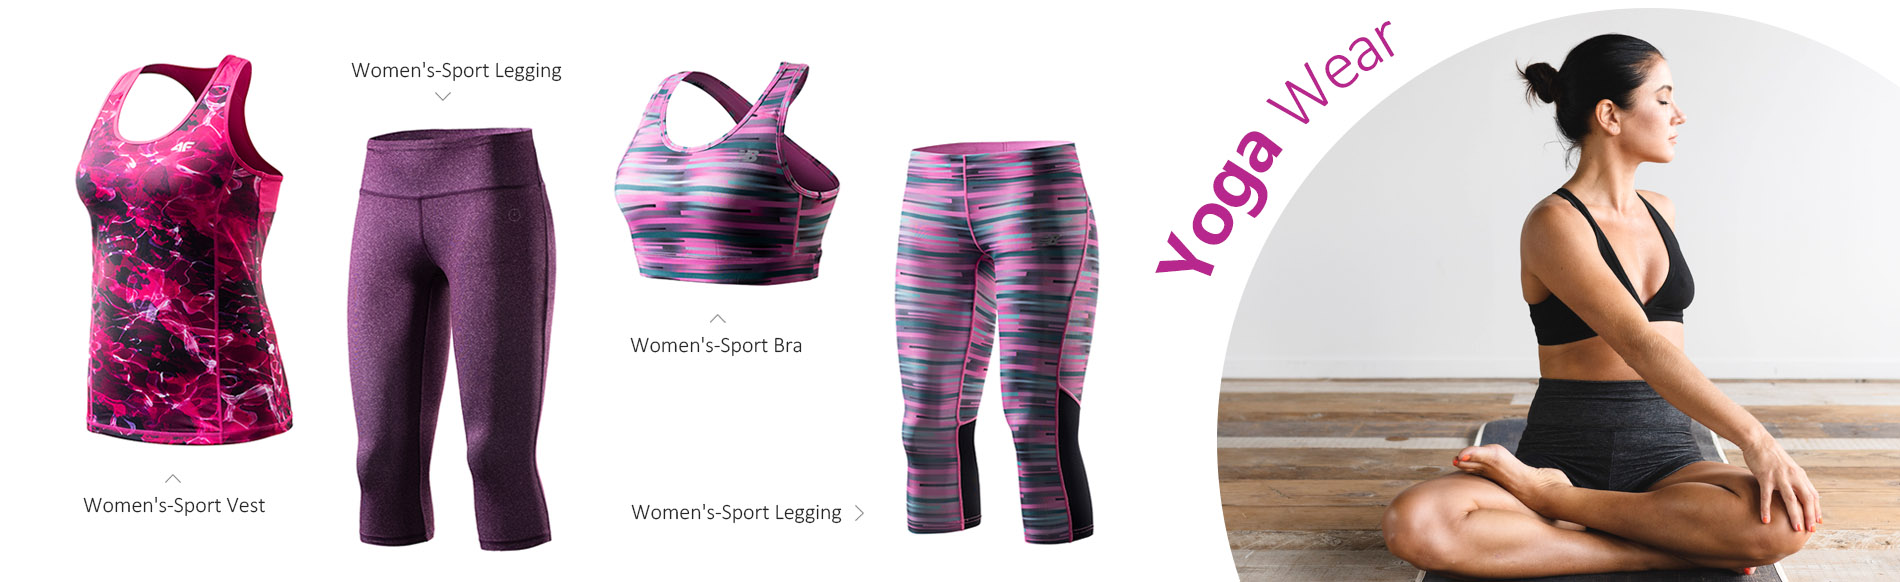 custom fitness apparel manufacturers